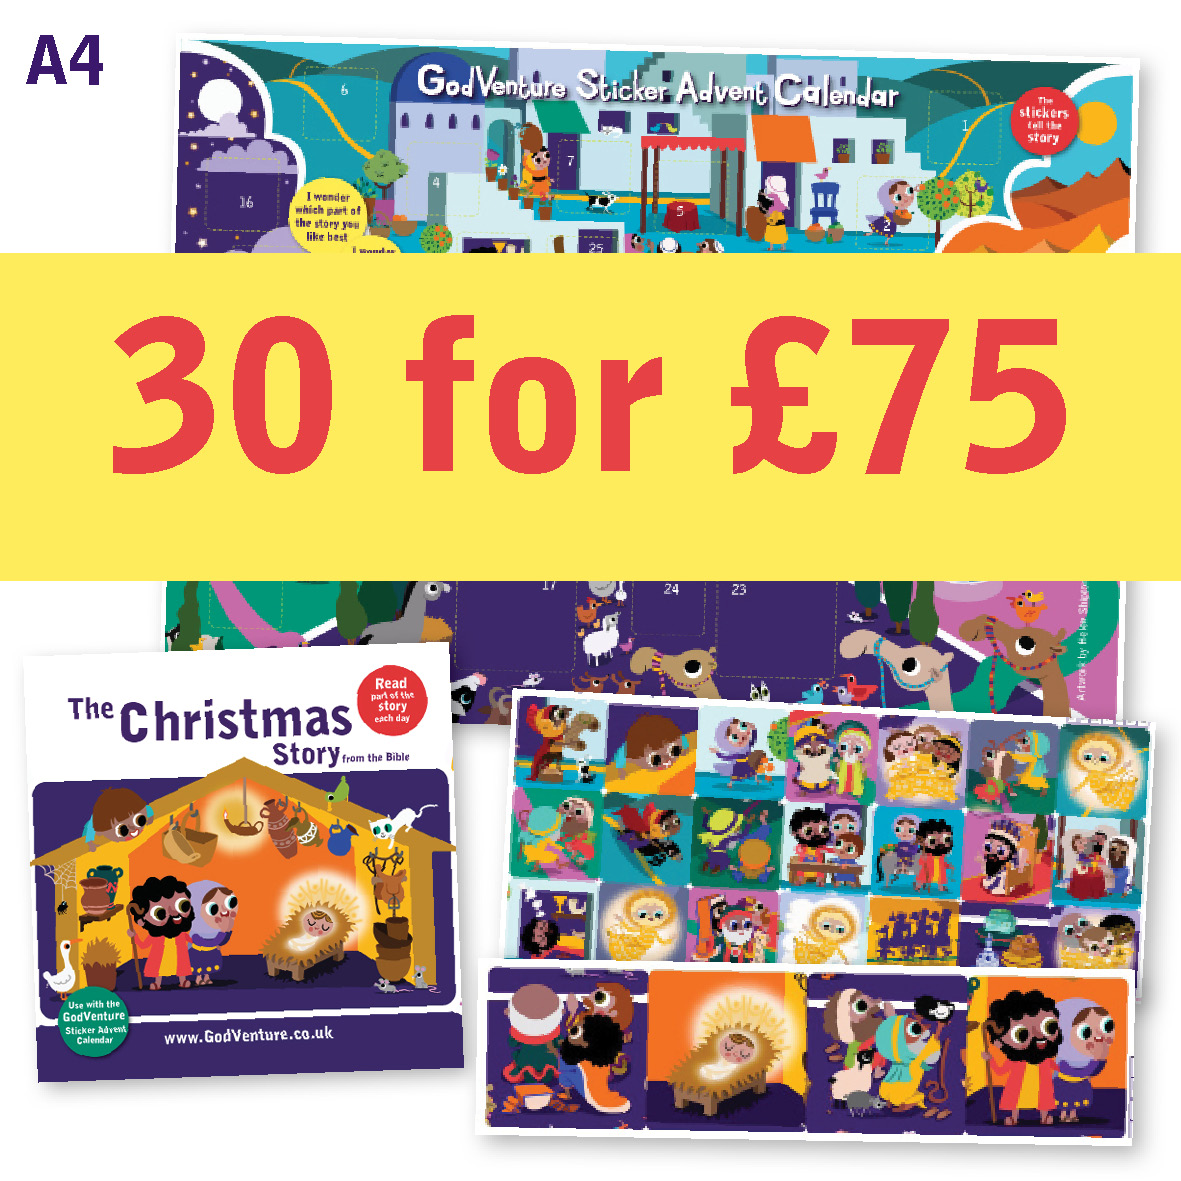 A4 Calendar Advent offer Sticker pack of 30